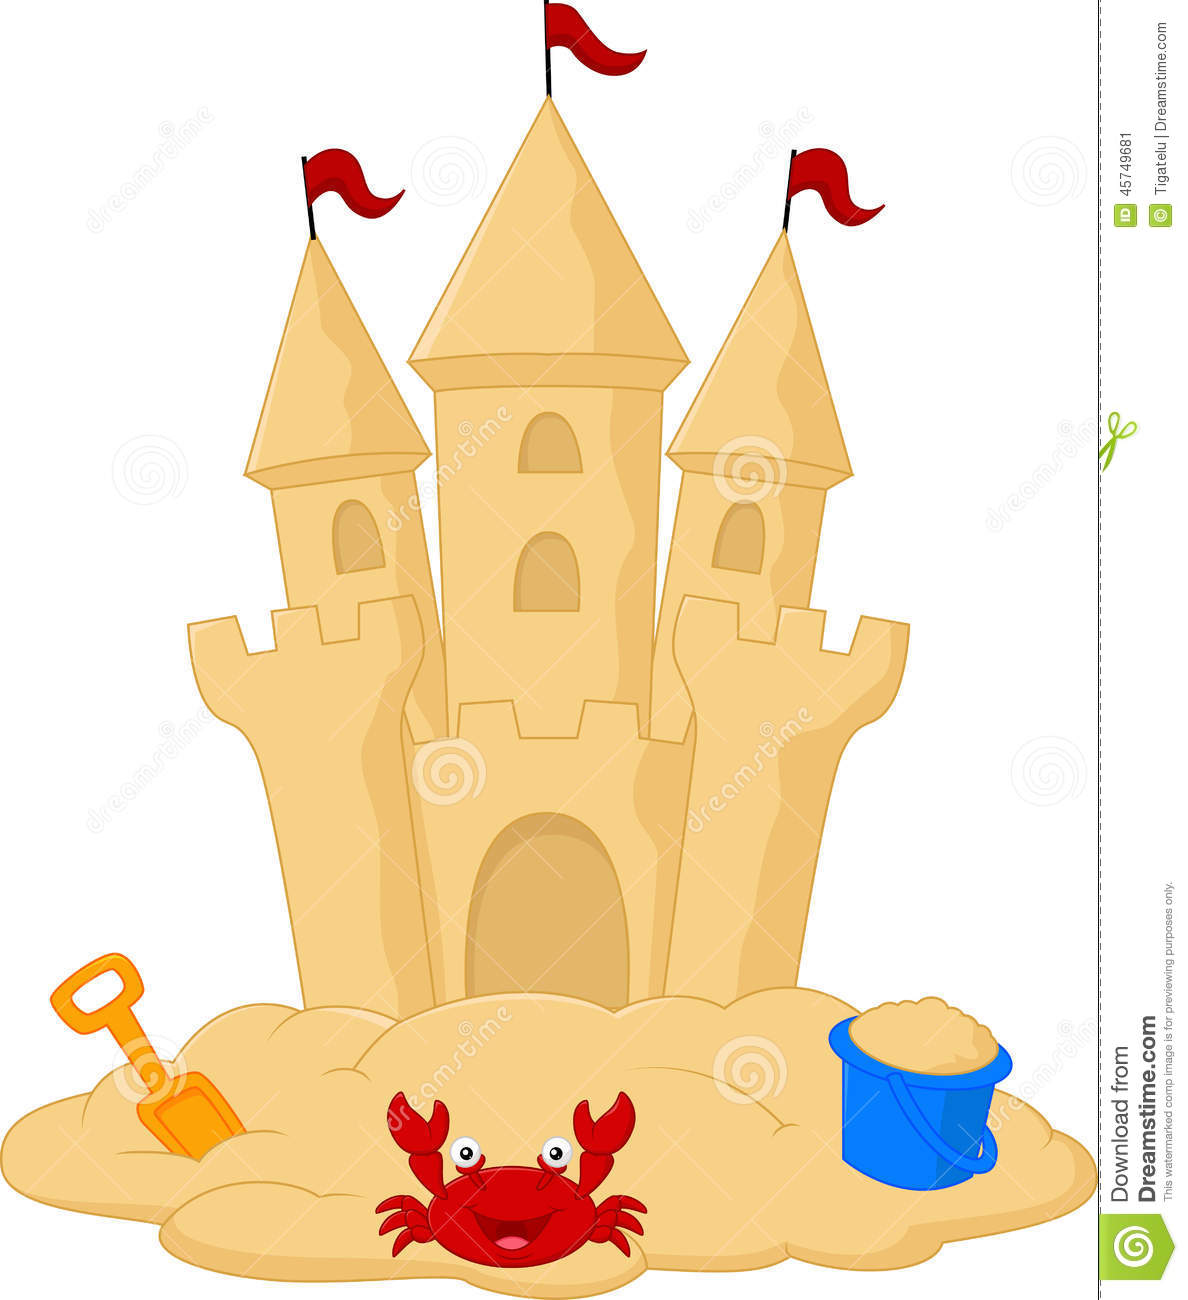 Sand Castle Cartoon Stock Vector - Image: 45749681